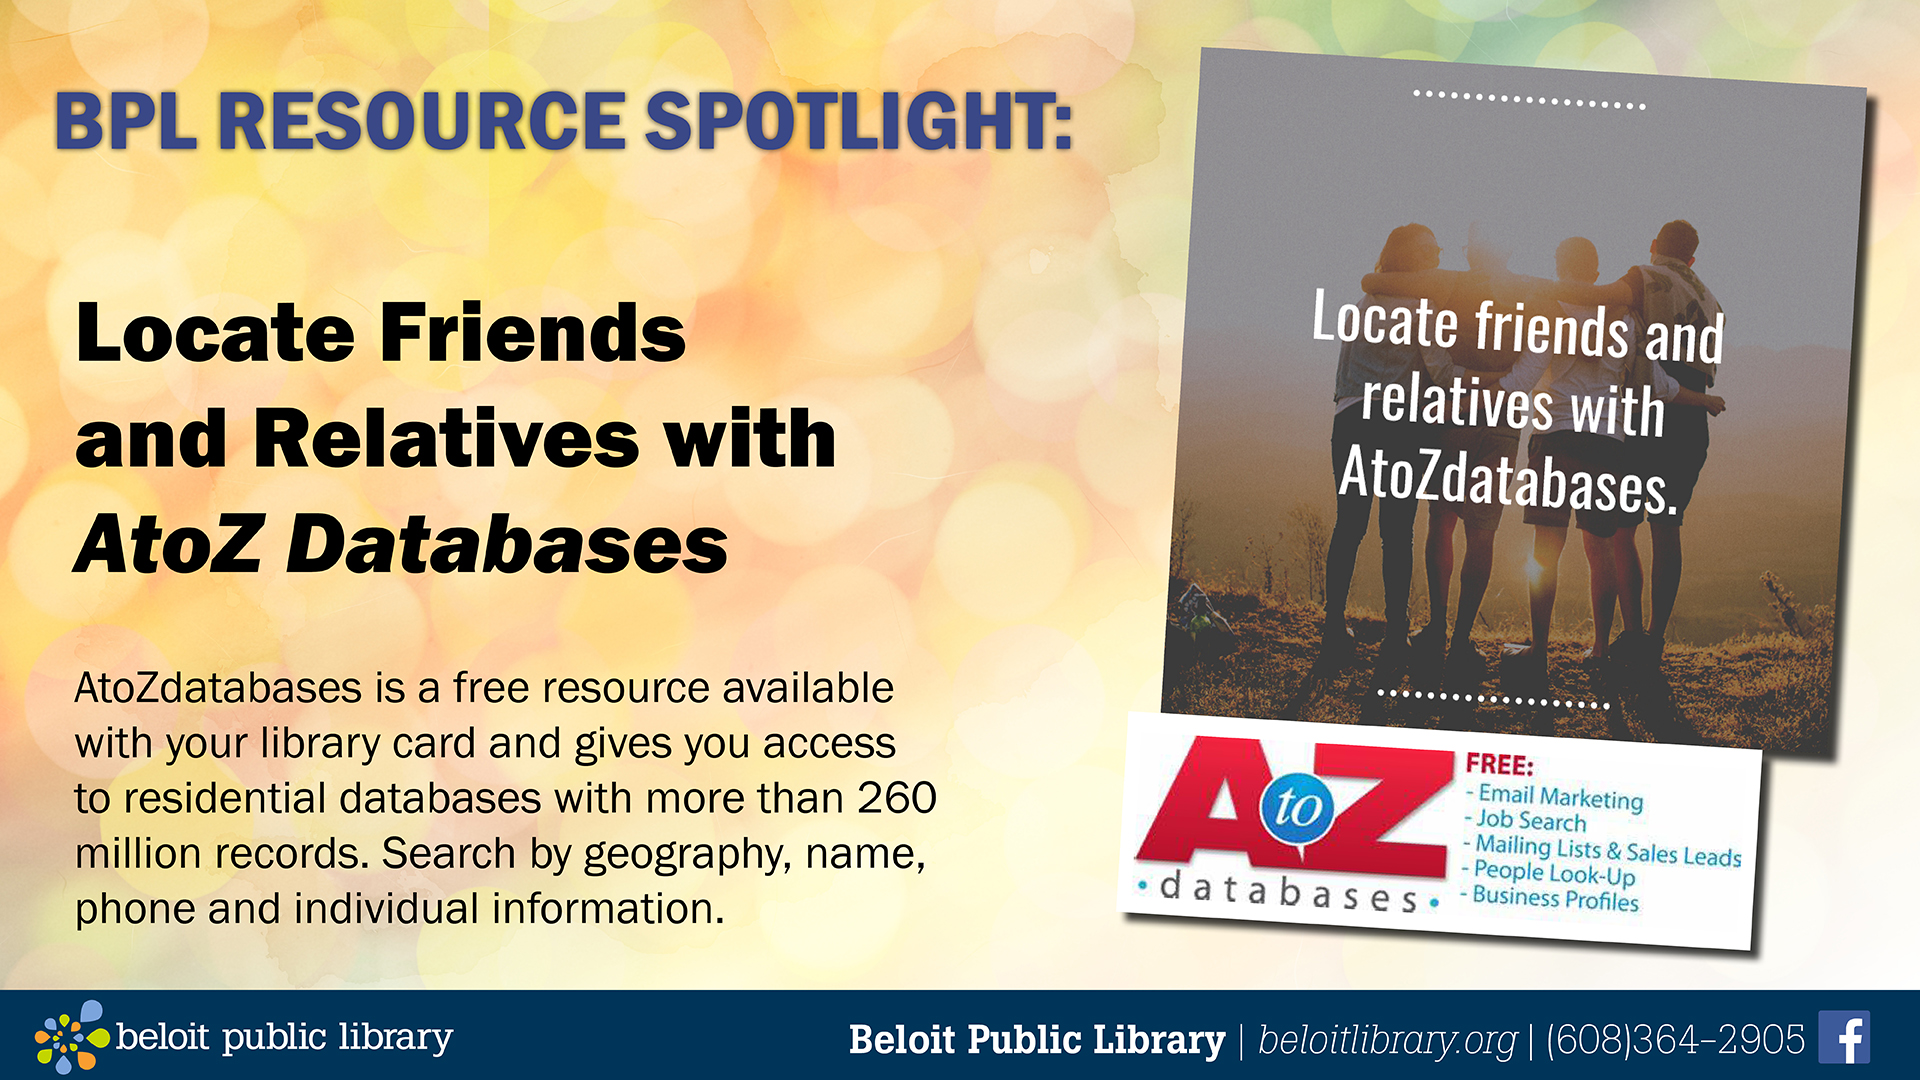 Locate Friends and Relatives with A to Z Databases. A to Z Databases is a free resource available with your library card and gives you access to residential databases with more than 260 million records. Search by geography, name, phone and individual information.